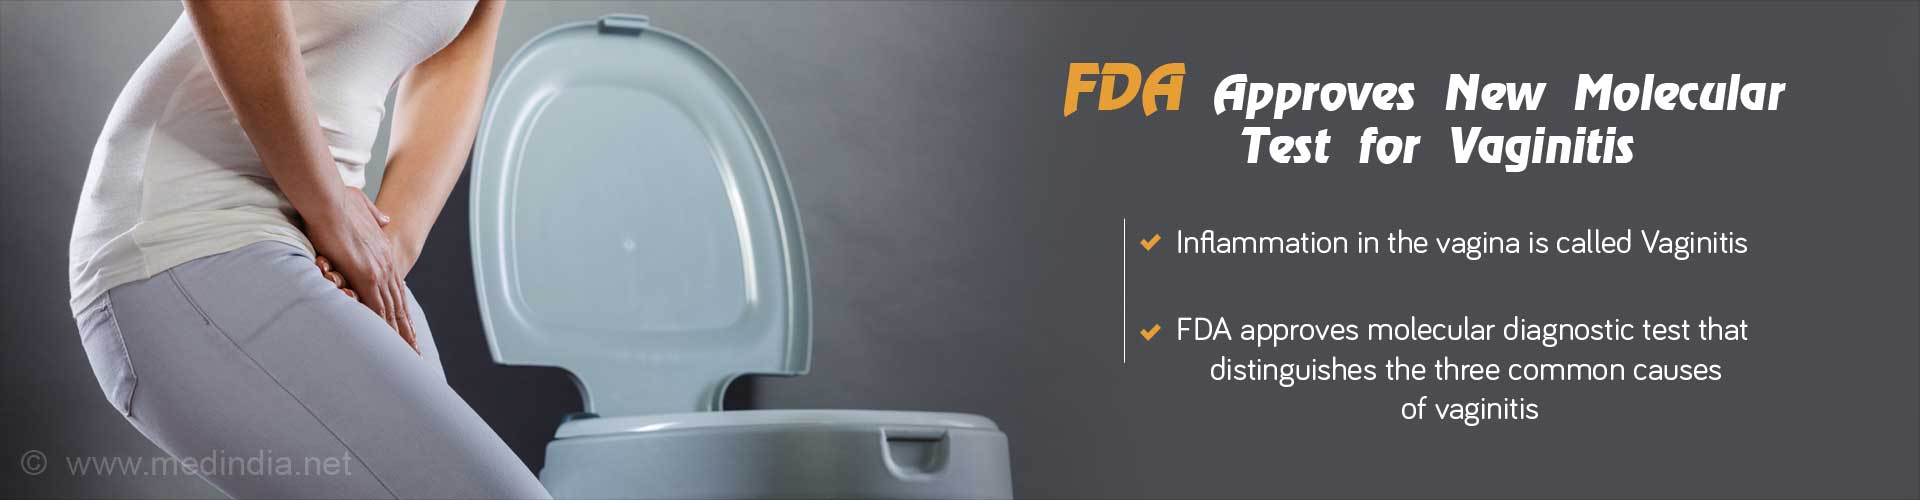 FDA Approval: New Molecular Test for Distinguishing Common Causes of Vaginitis